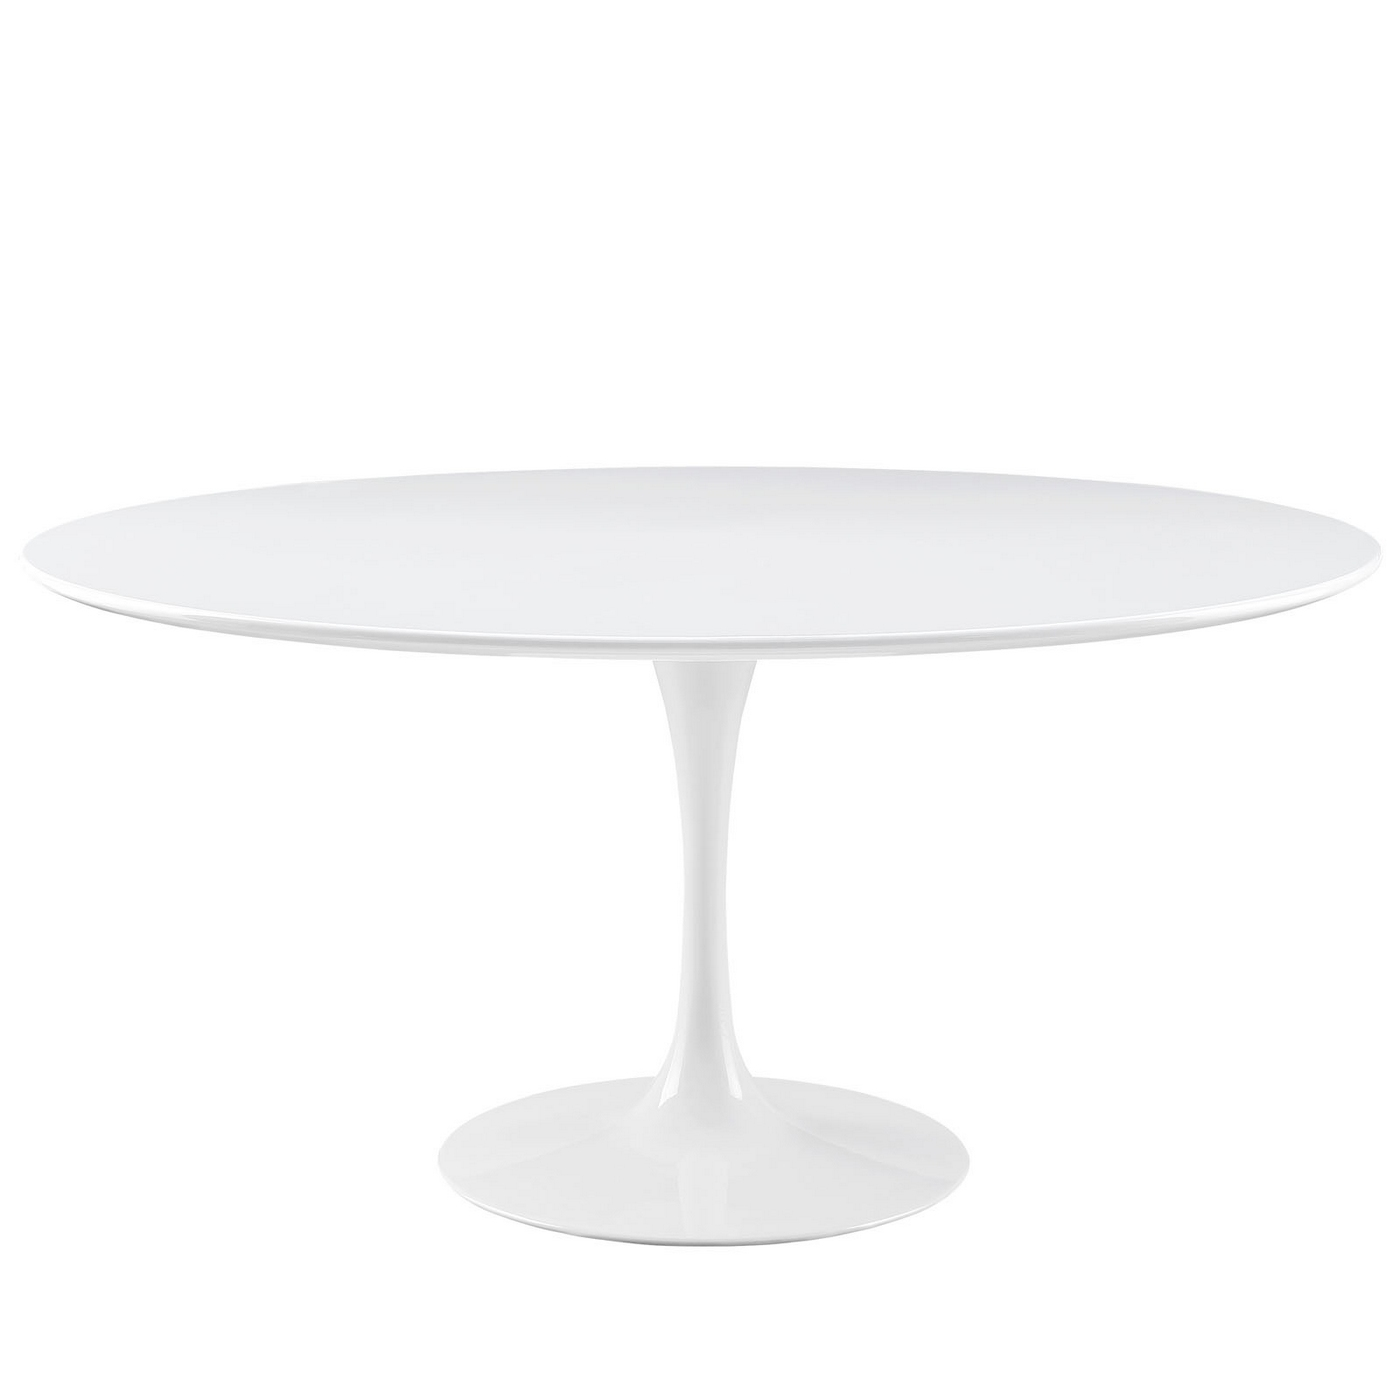 Lippa modern 60 round wood top dining table w lacquered - Modern white round dining table ...